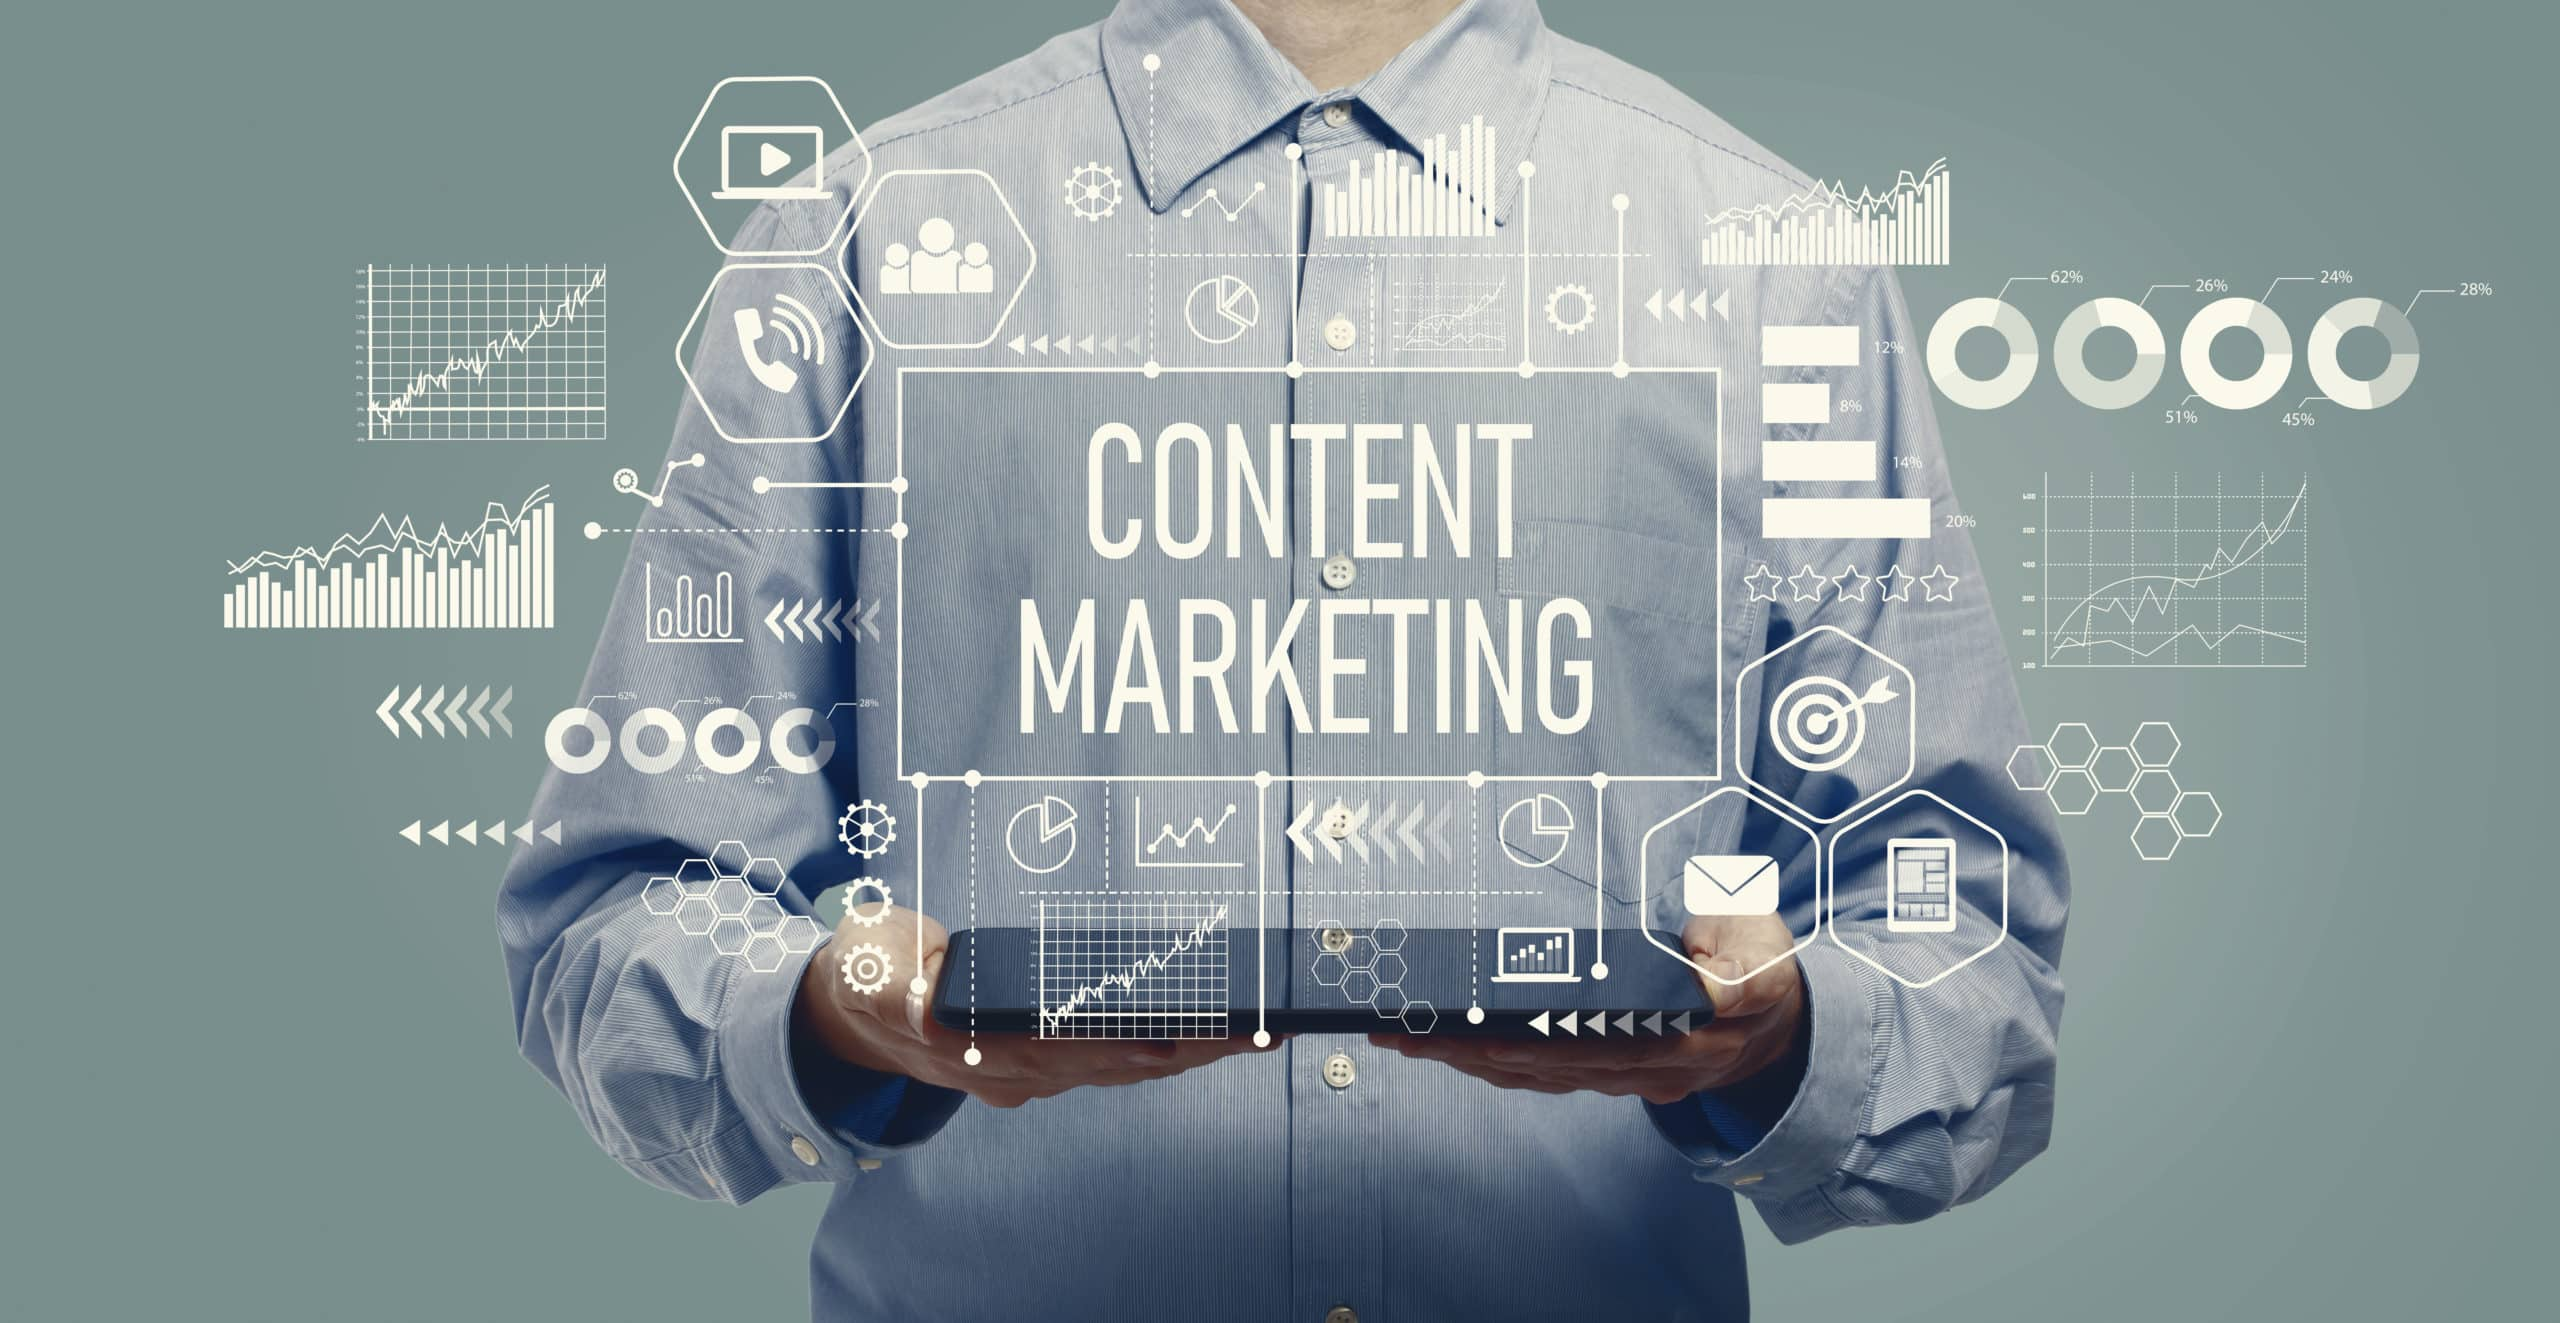 Is Content Marketing Right for My Industry?